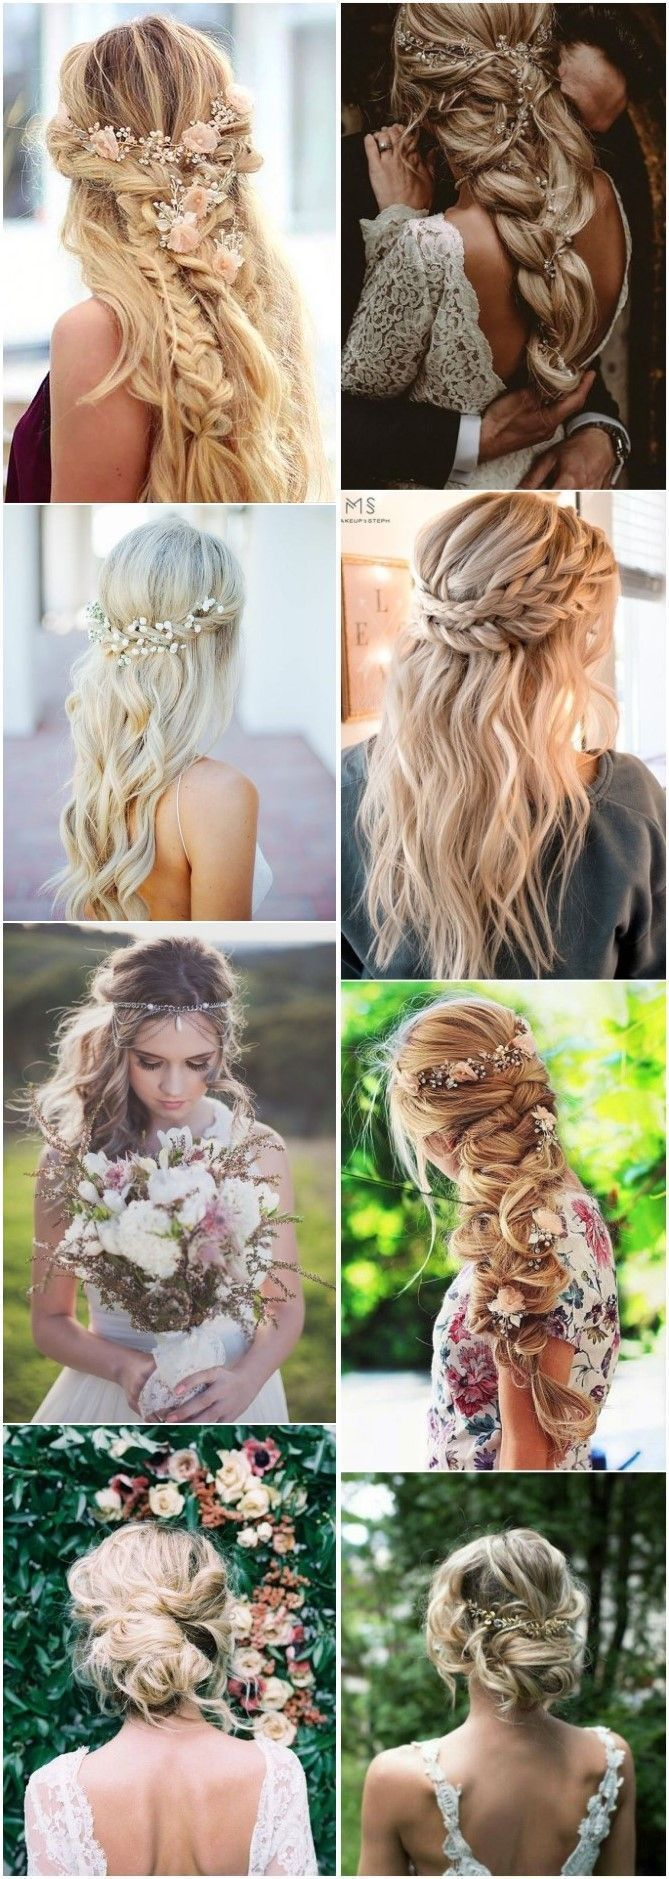 21 BOHO ISPIRATI Acconciature da sposa uniche e creative #Acconciature #Modalità #We